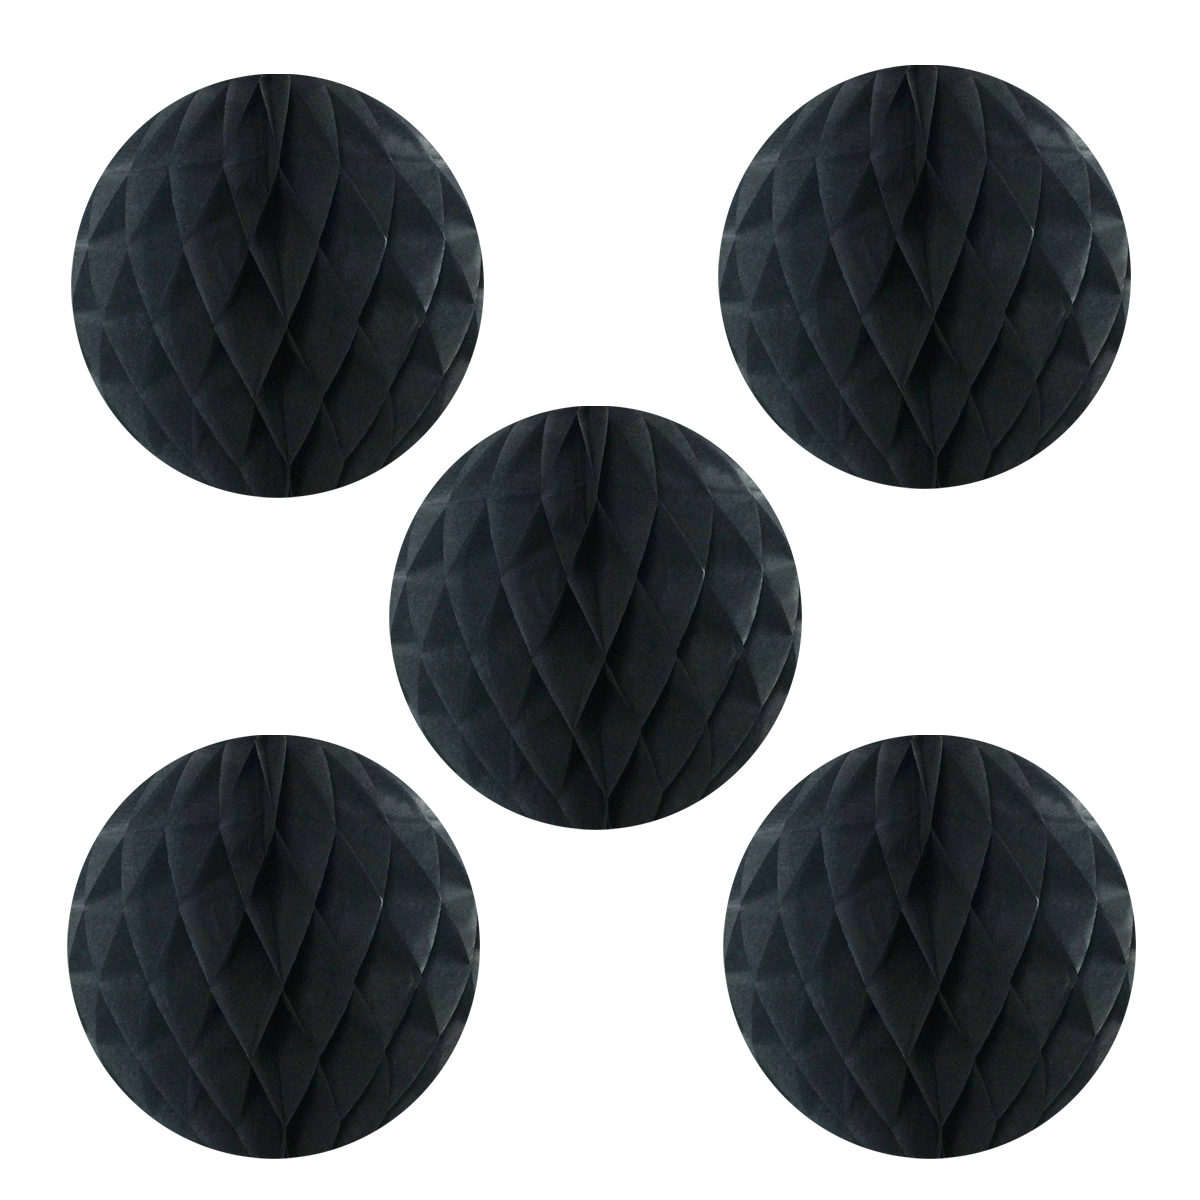 """Wrapables® 6"""" Set of 5 Tissue Honeycomb Ball Party Decorations for Weddings, Birthday Parties, Baby Showers, and Nursery Décor, Black"""